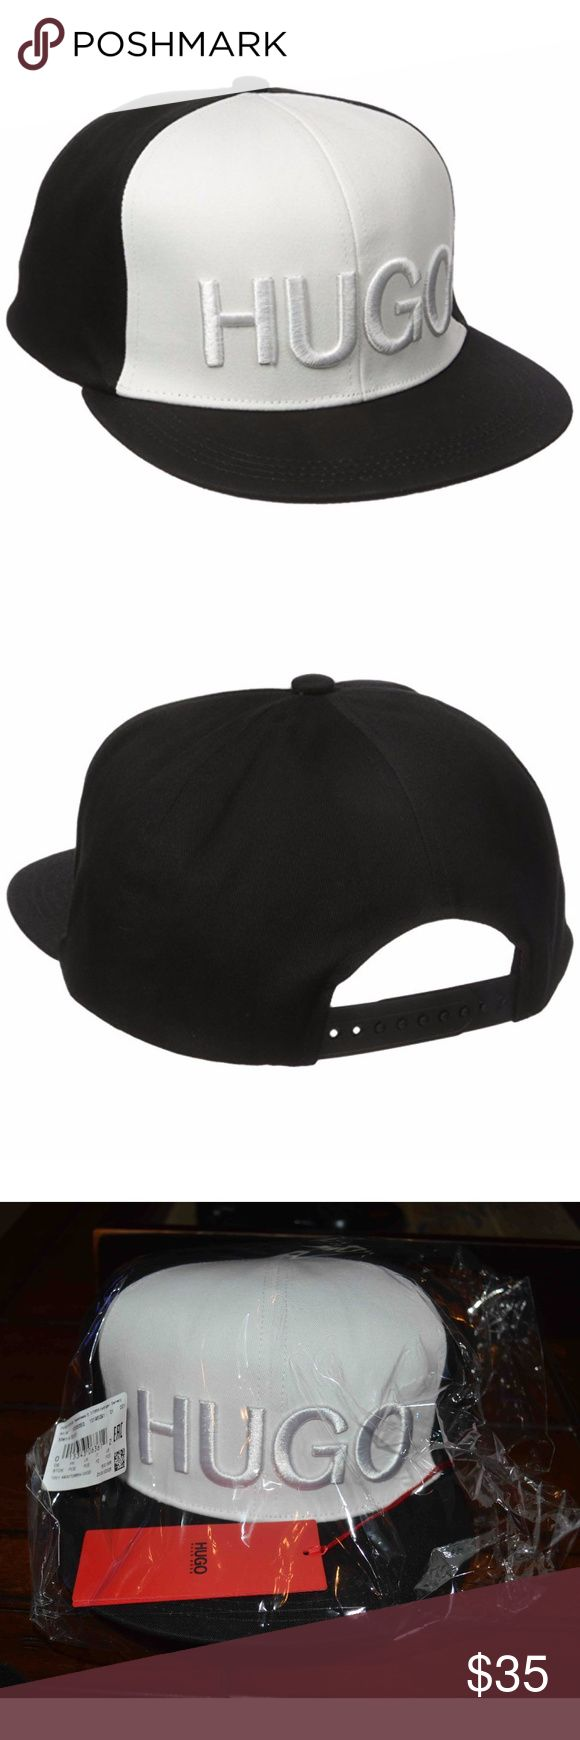 HUGO Boss Logo Snapback Fashion Baseball Cap Hat HUGO Boss Logo Snapback Fashion Baseball Cap Hat Black White New  Snapback Closure Contrasting Color Big HUGO Logo New with Tags Great Chance to Own for Less Hugo Boss Accessories Hats